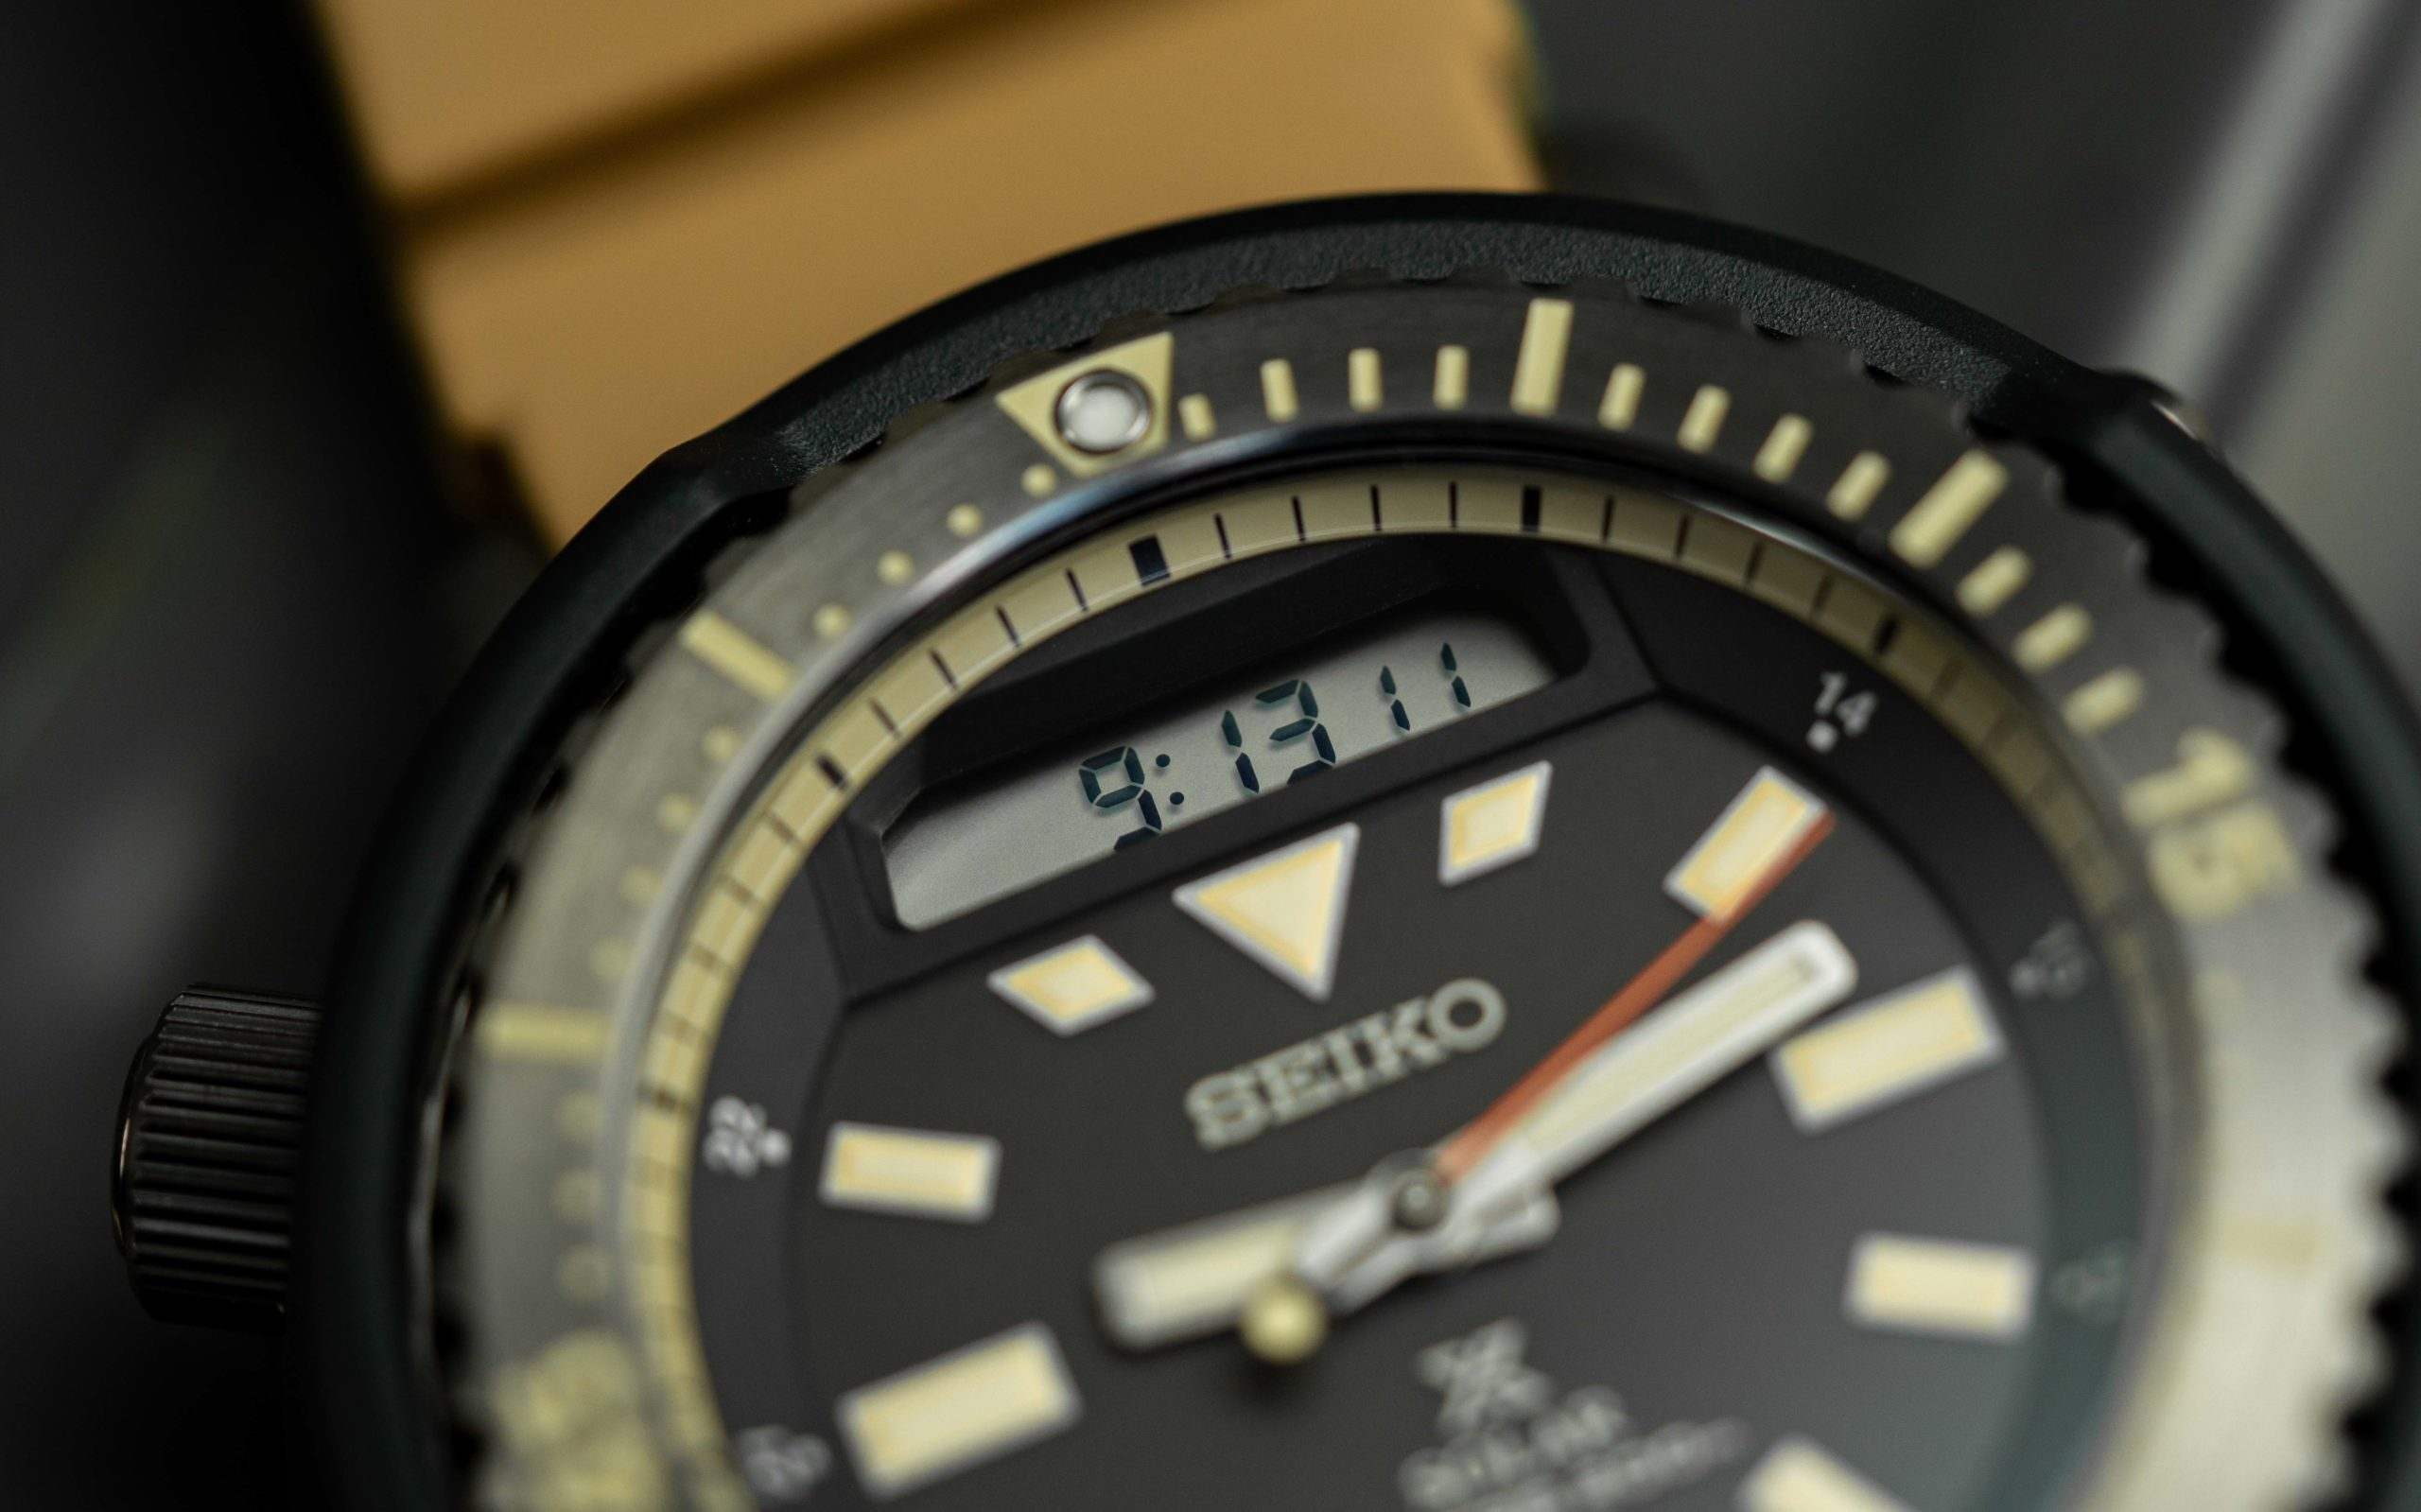 Seiko-Arnie-2019-2020-LCD-Display